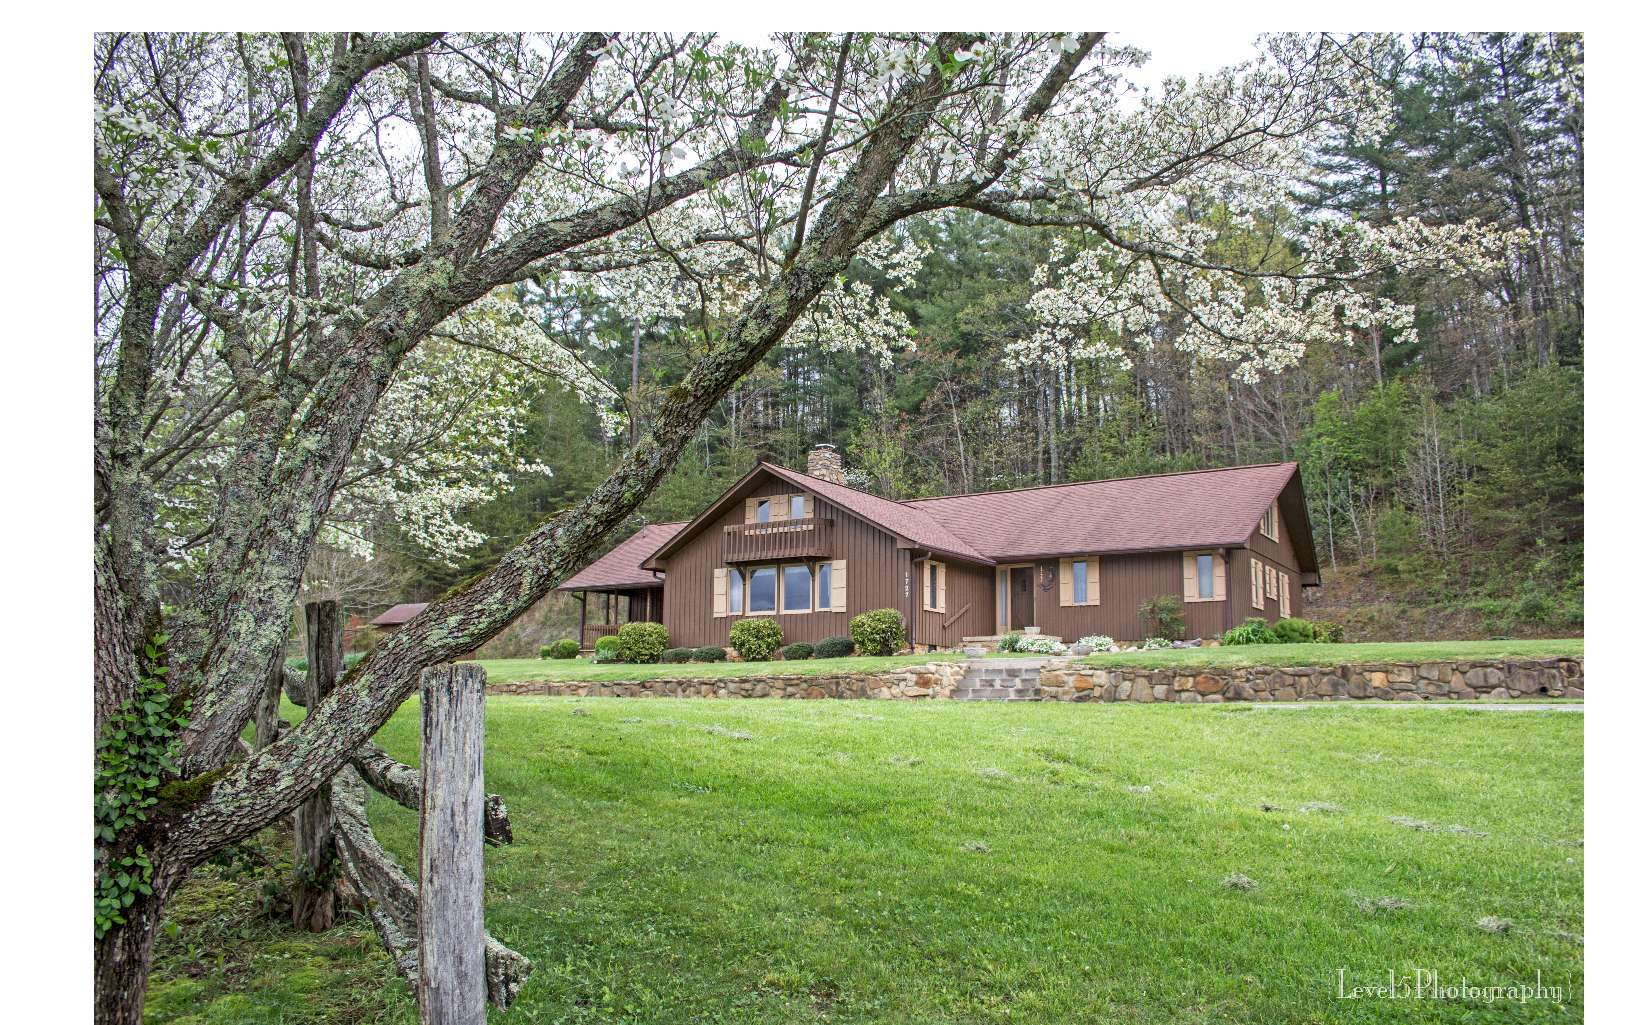 NC mountain property 1727 ROBINSON ROAD,Andrews,North Carolina 28901 ,Residential For sale,Residential,273287 mountain real estate